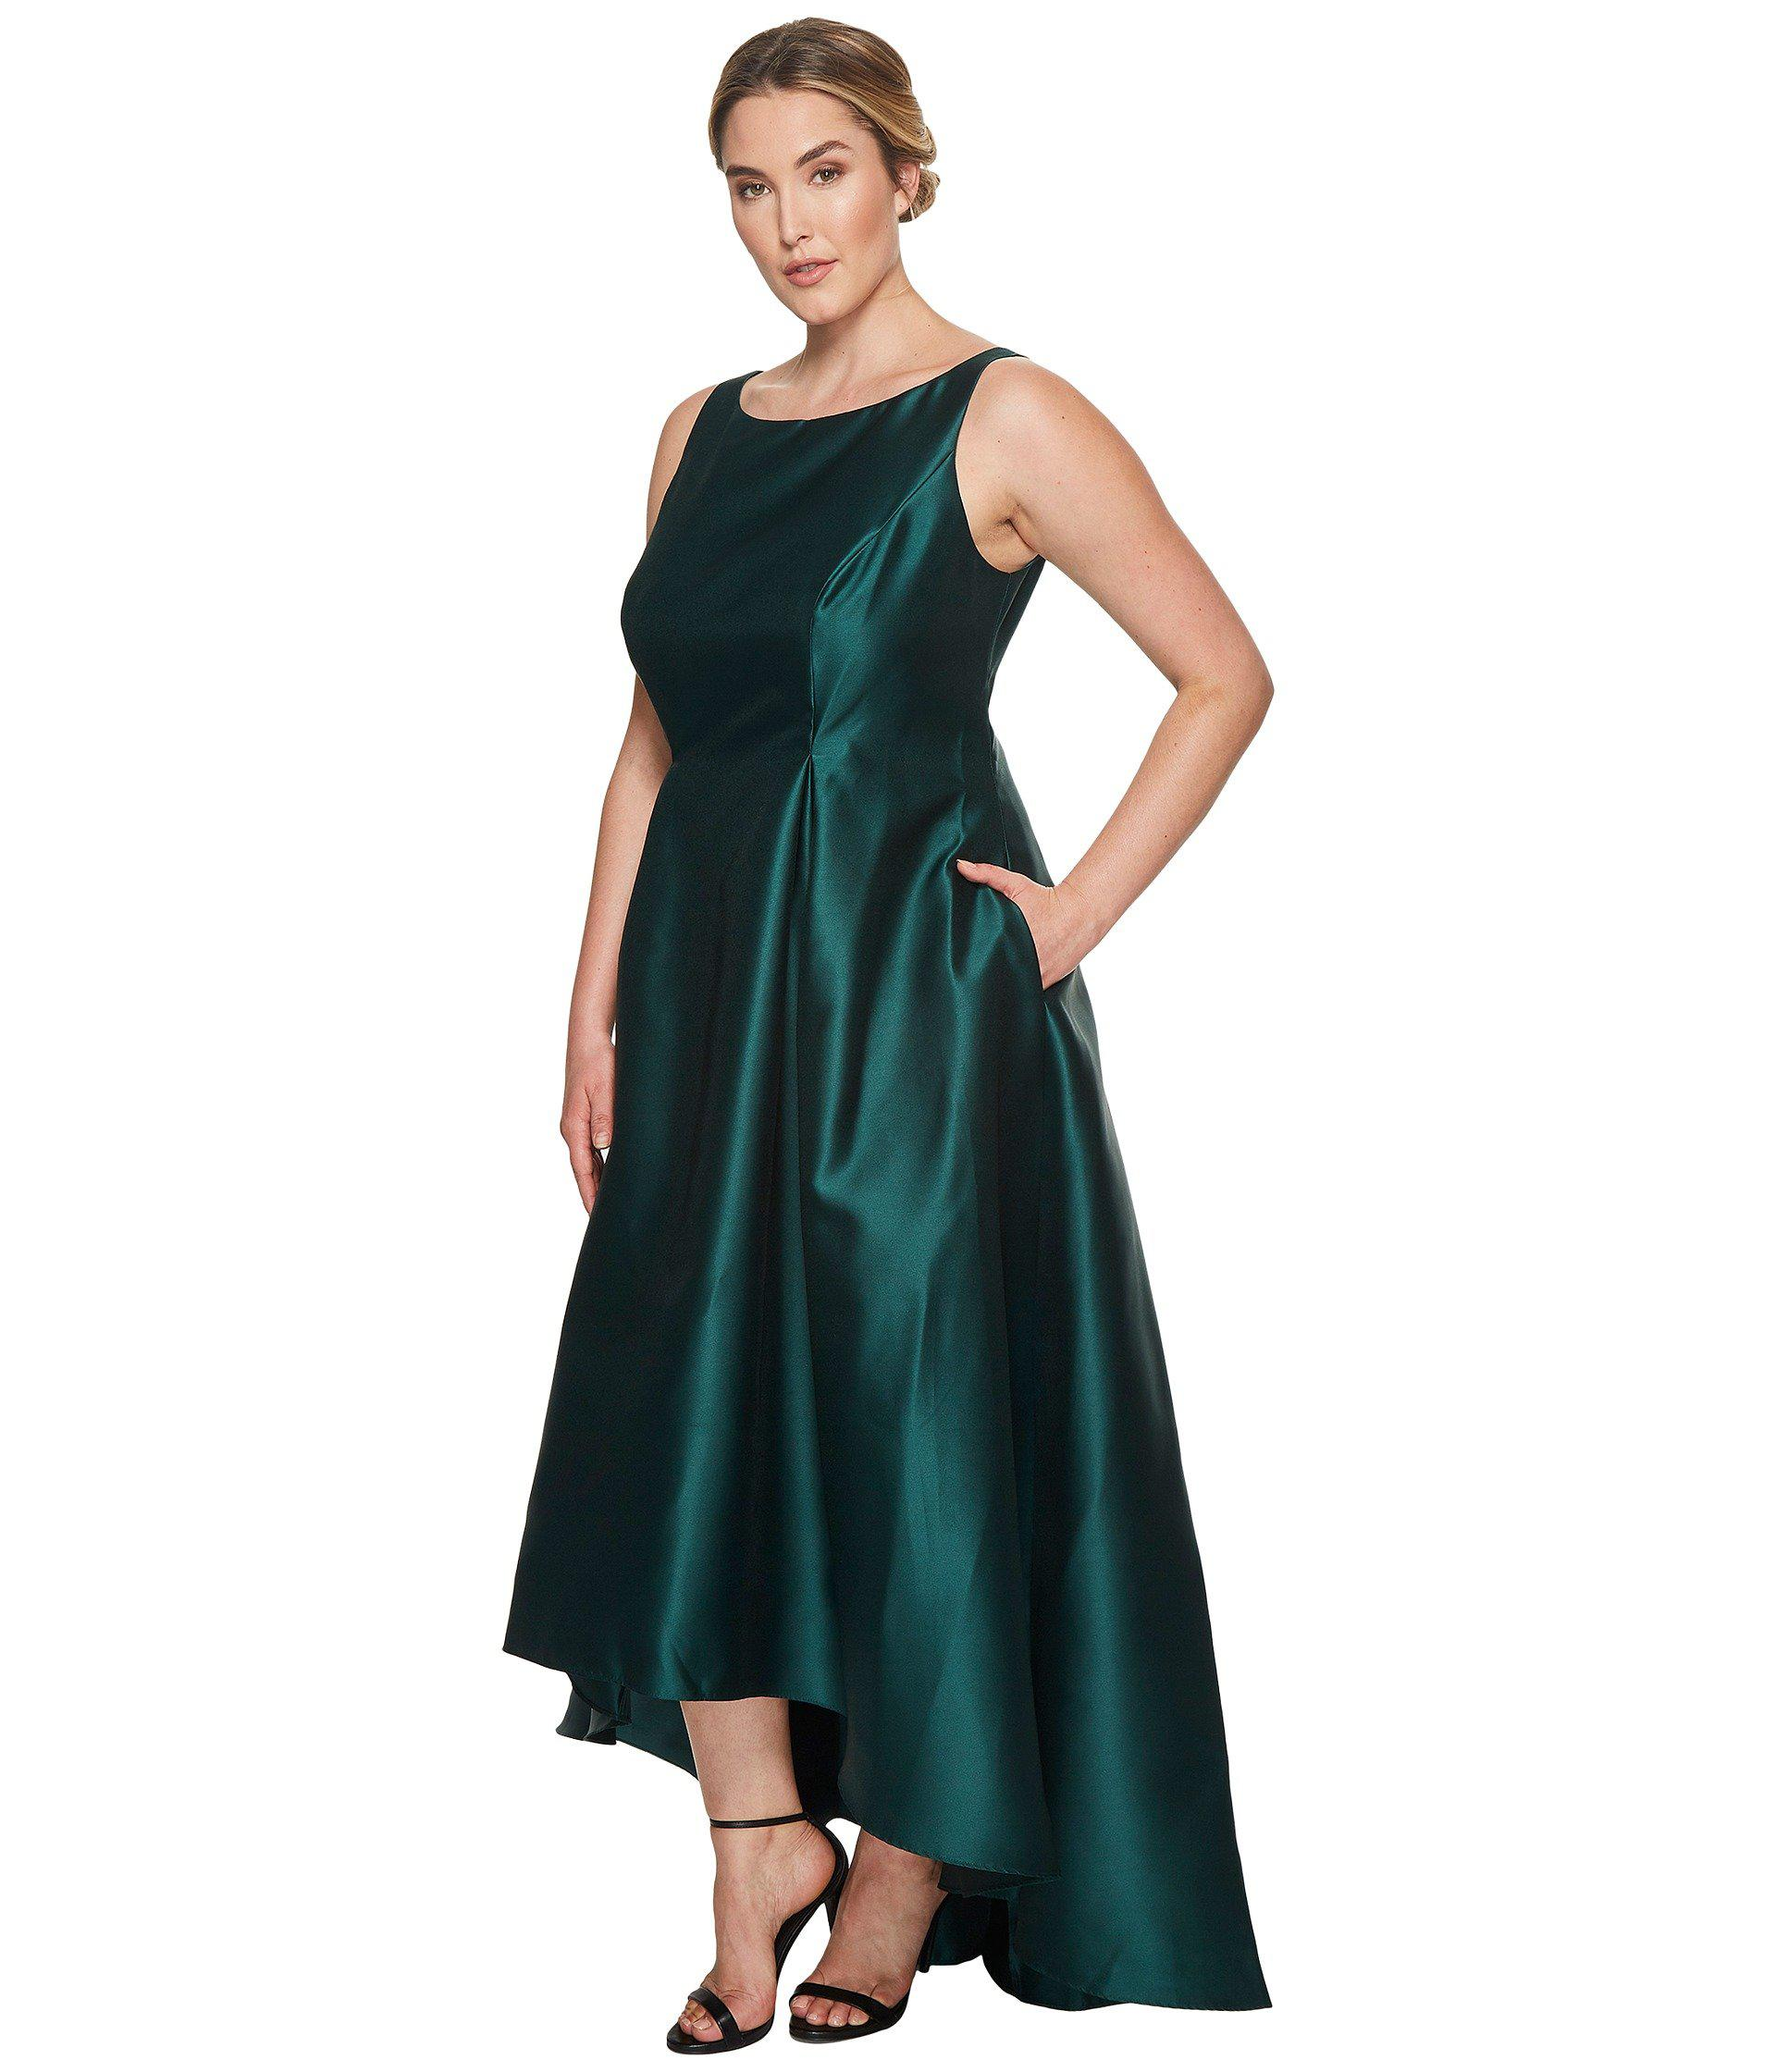 Old Fashioned Adrianna Papell Iridescent Chiffon Petal Gown Gallery ...